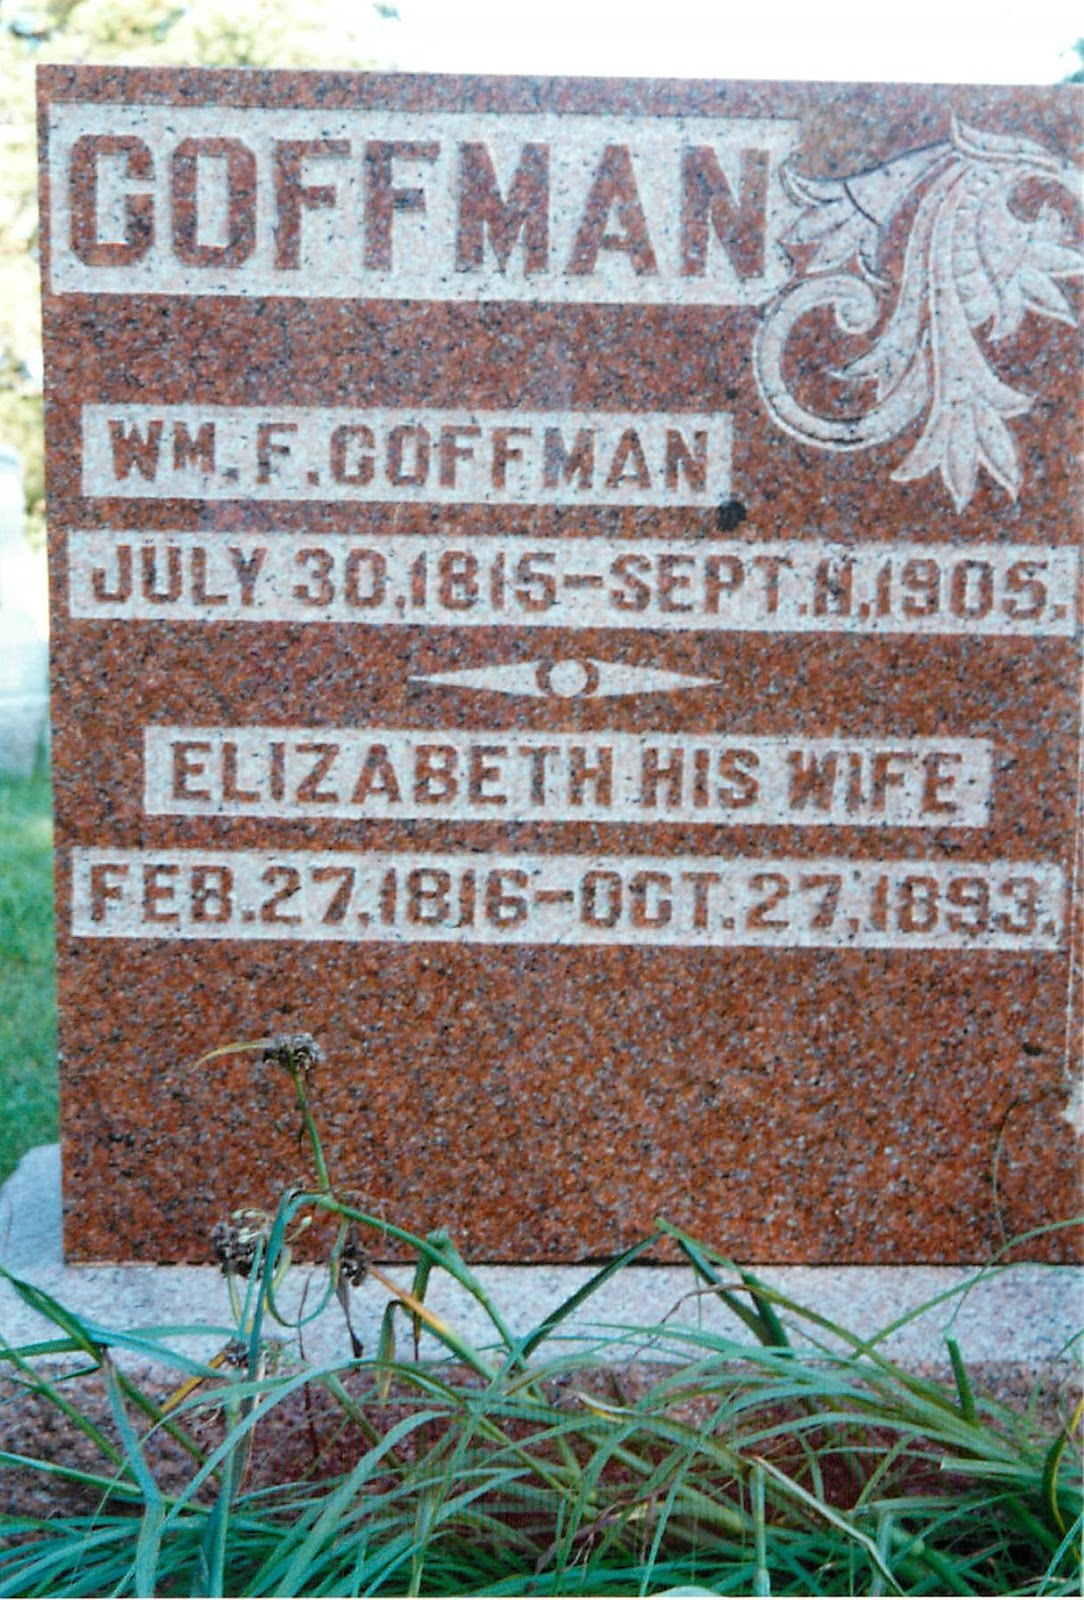 Illinois adams county fowler - William And Elizabeth Wilson Coffman Were Born In Kentucky And Came When Children With Their Parents To Illinois At So Early A Day That Indians Were